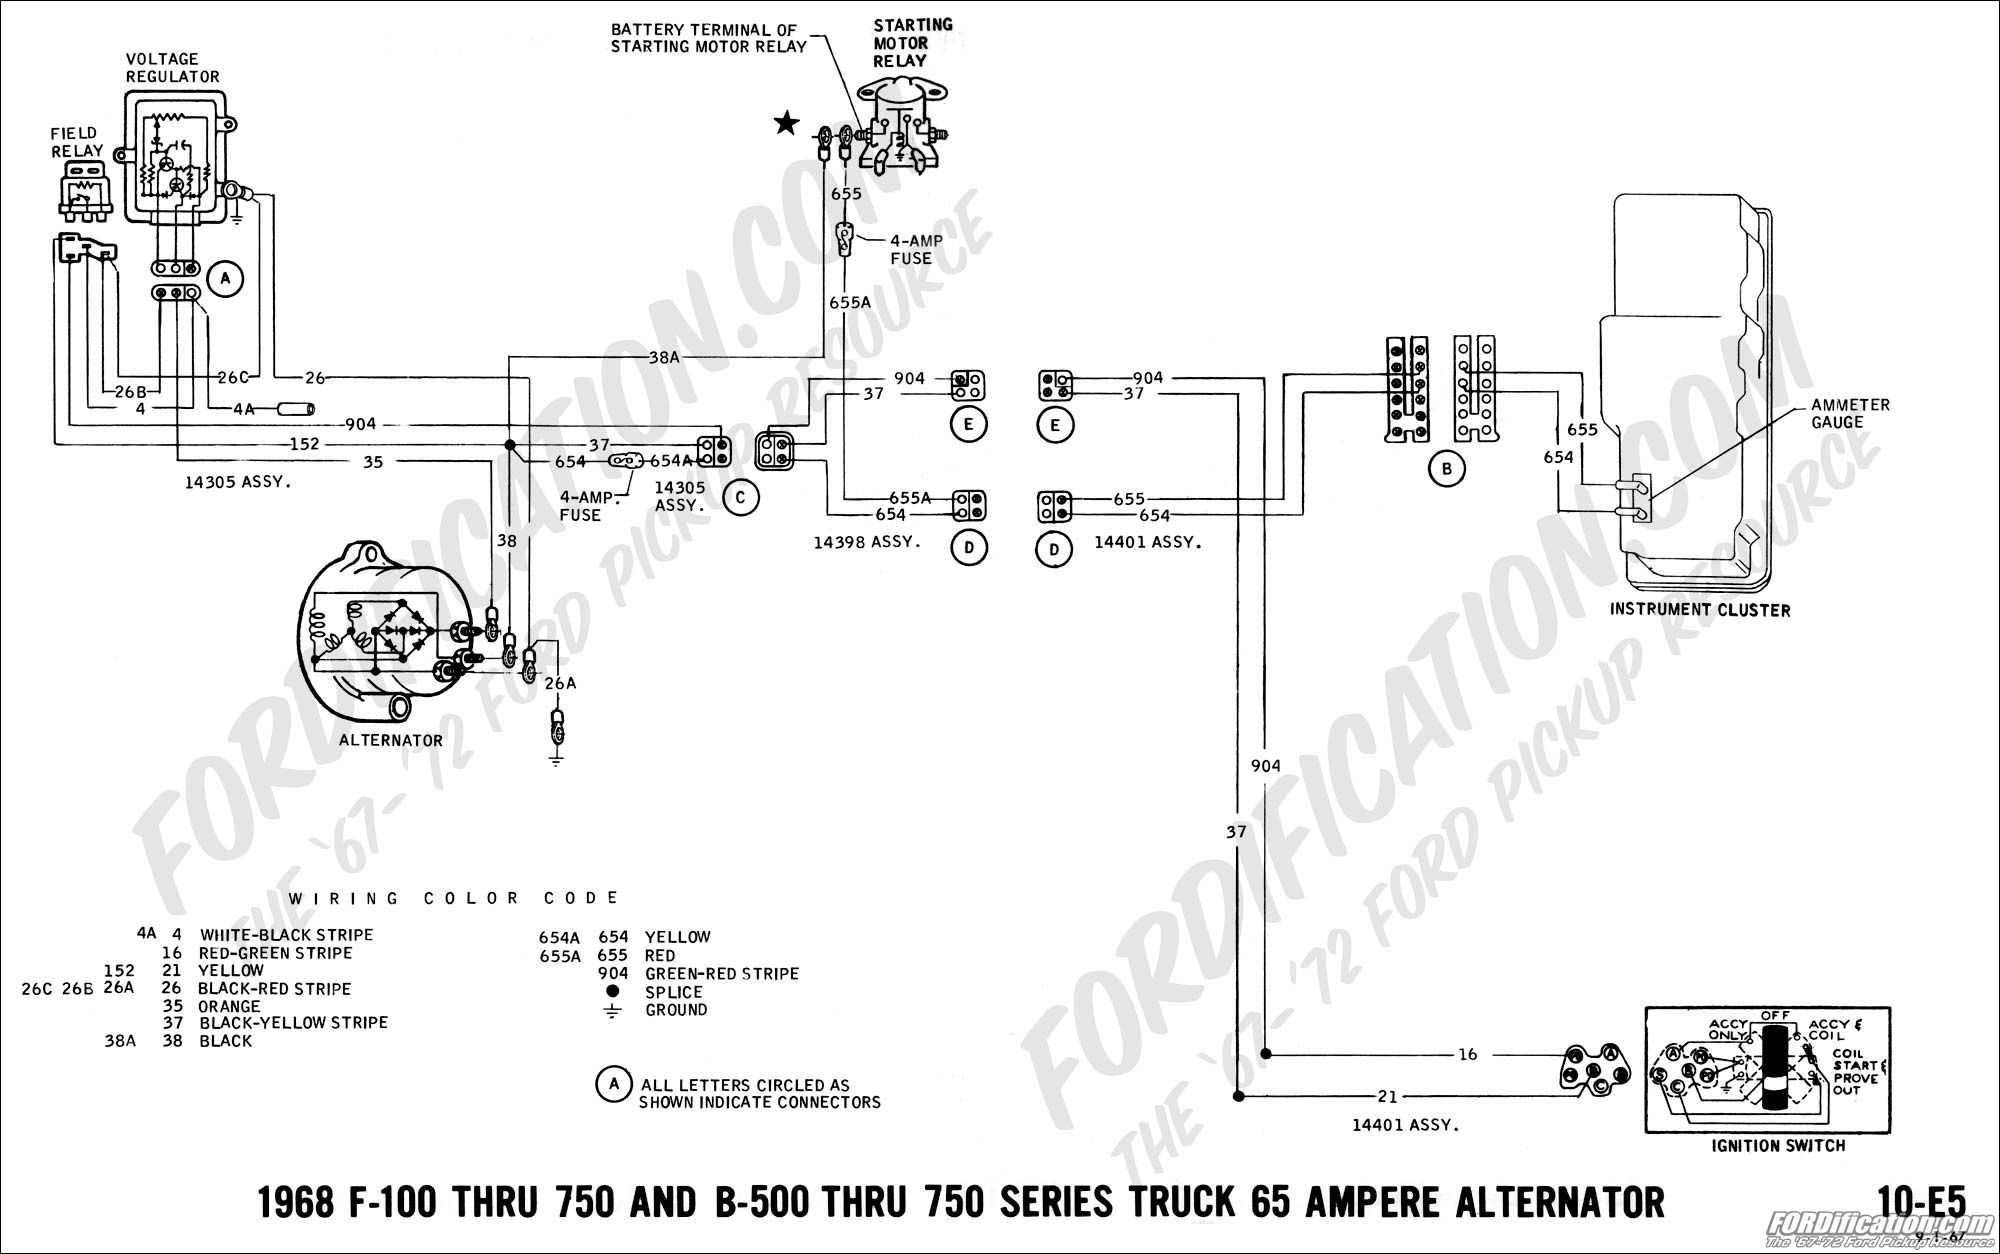 68 ford alternator wiring diagram 76 ford f150 trailer 1990 Ford Alternator Wiring Diagram